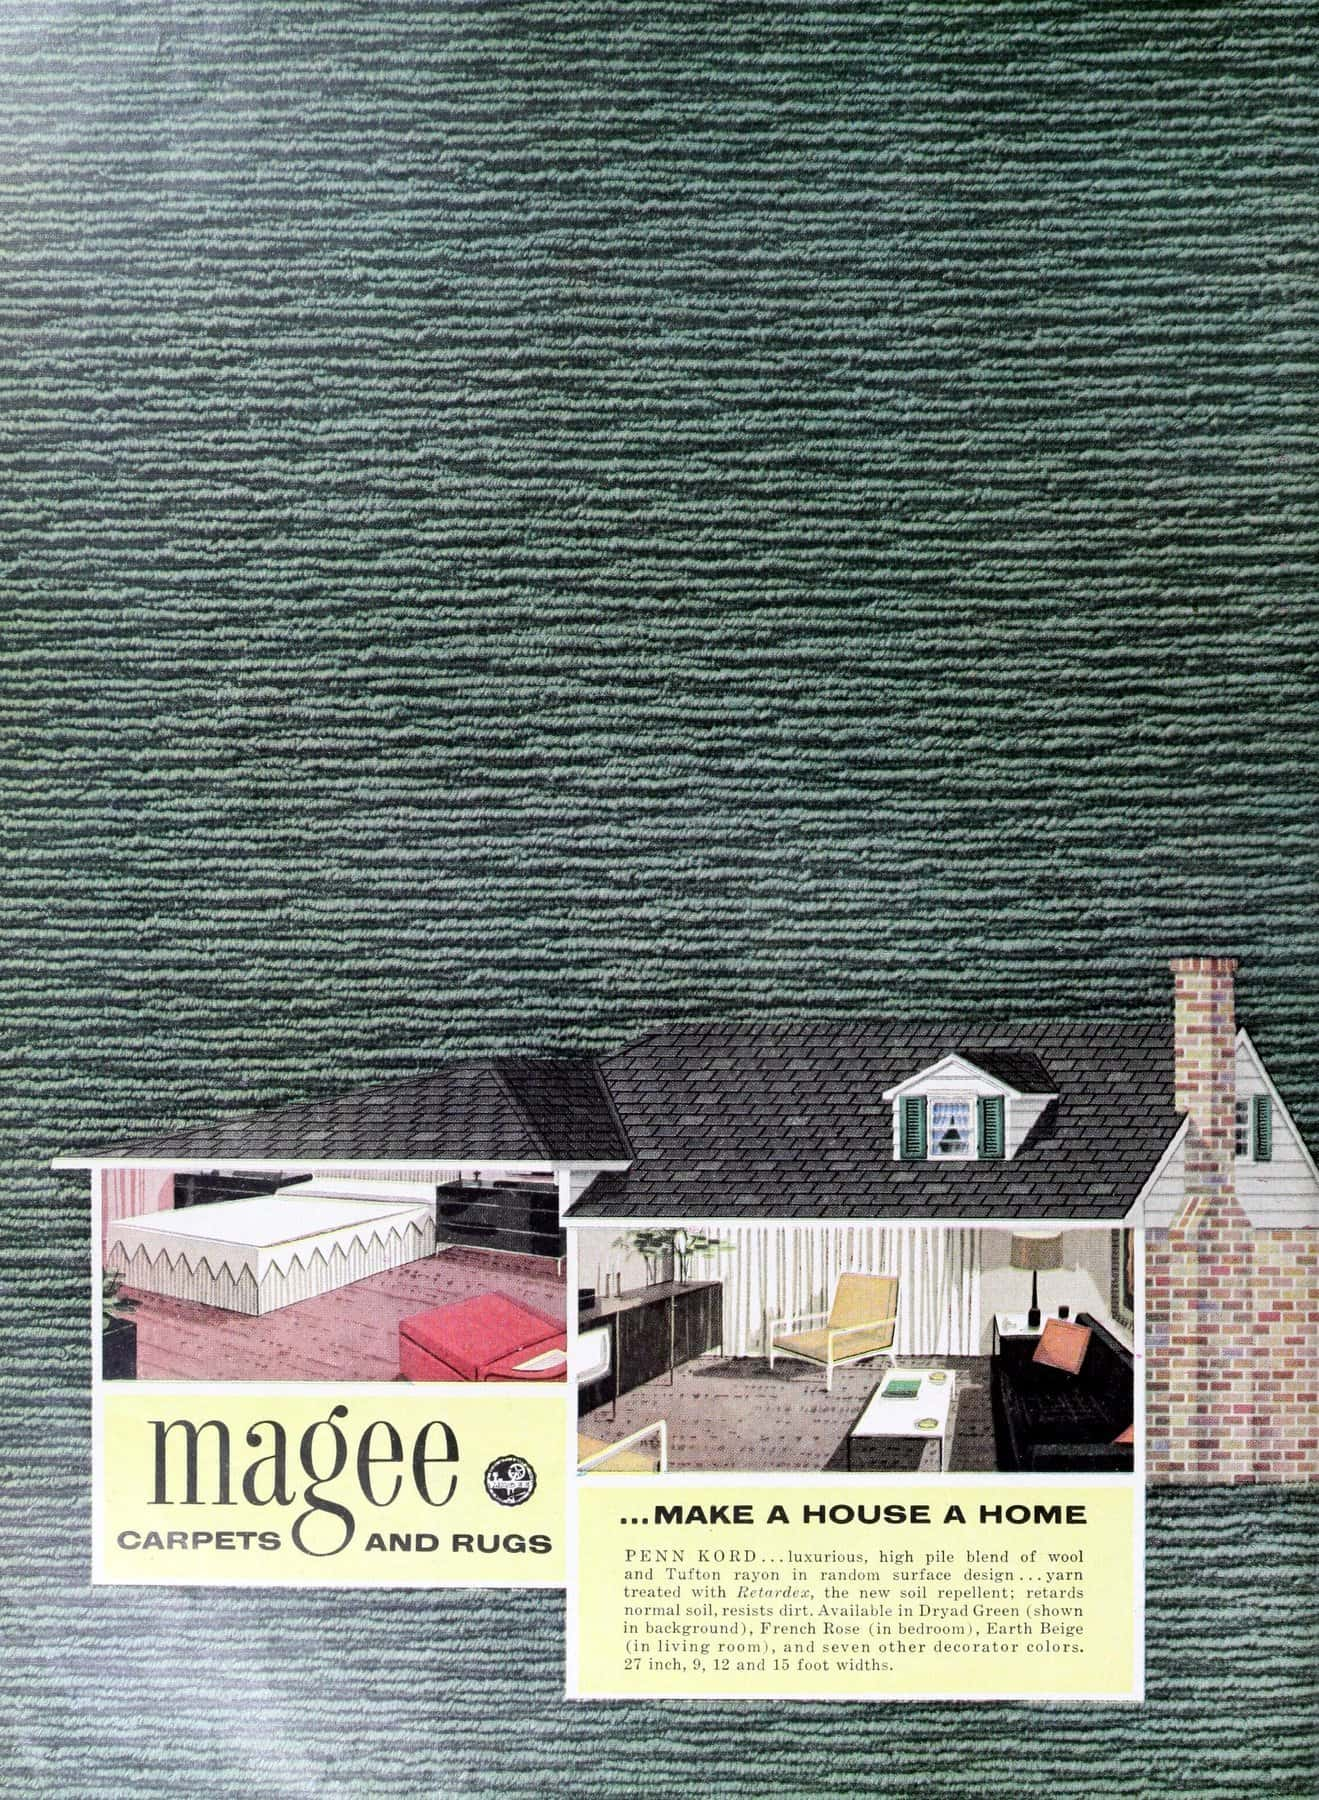 1950s Magee textured carpet home decor styles